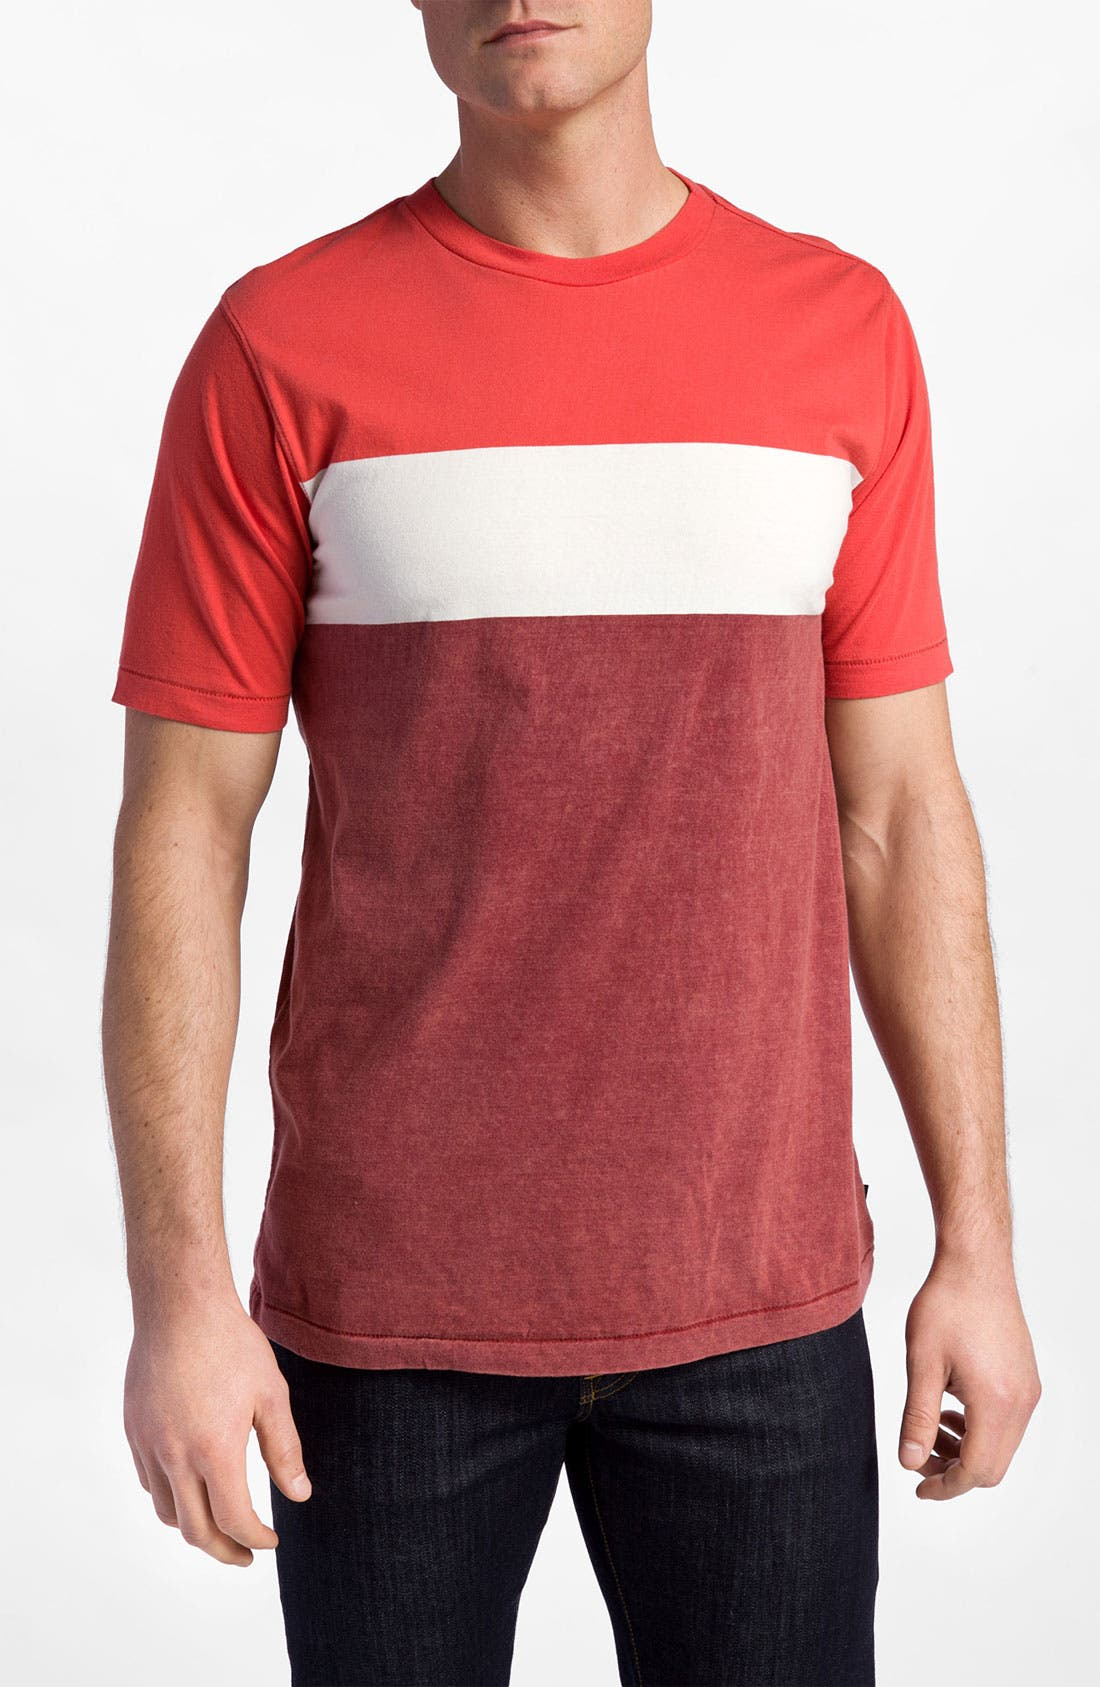 Alternate Image 1 Selected - Quiksilver 'Friday' Colorblock Crewneck T-Shirt